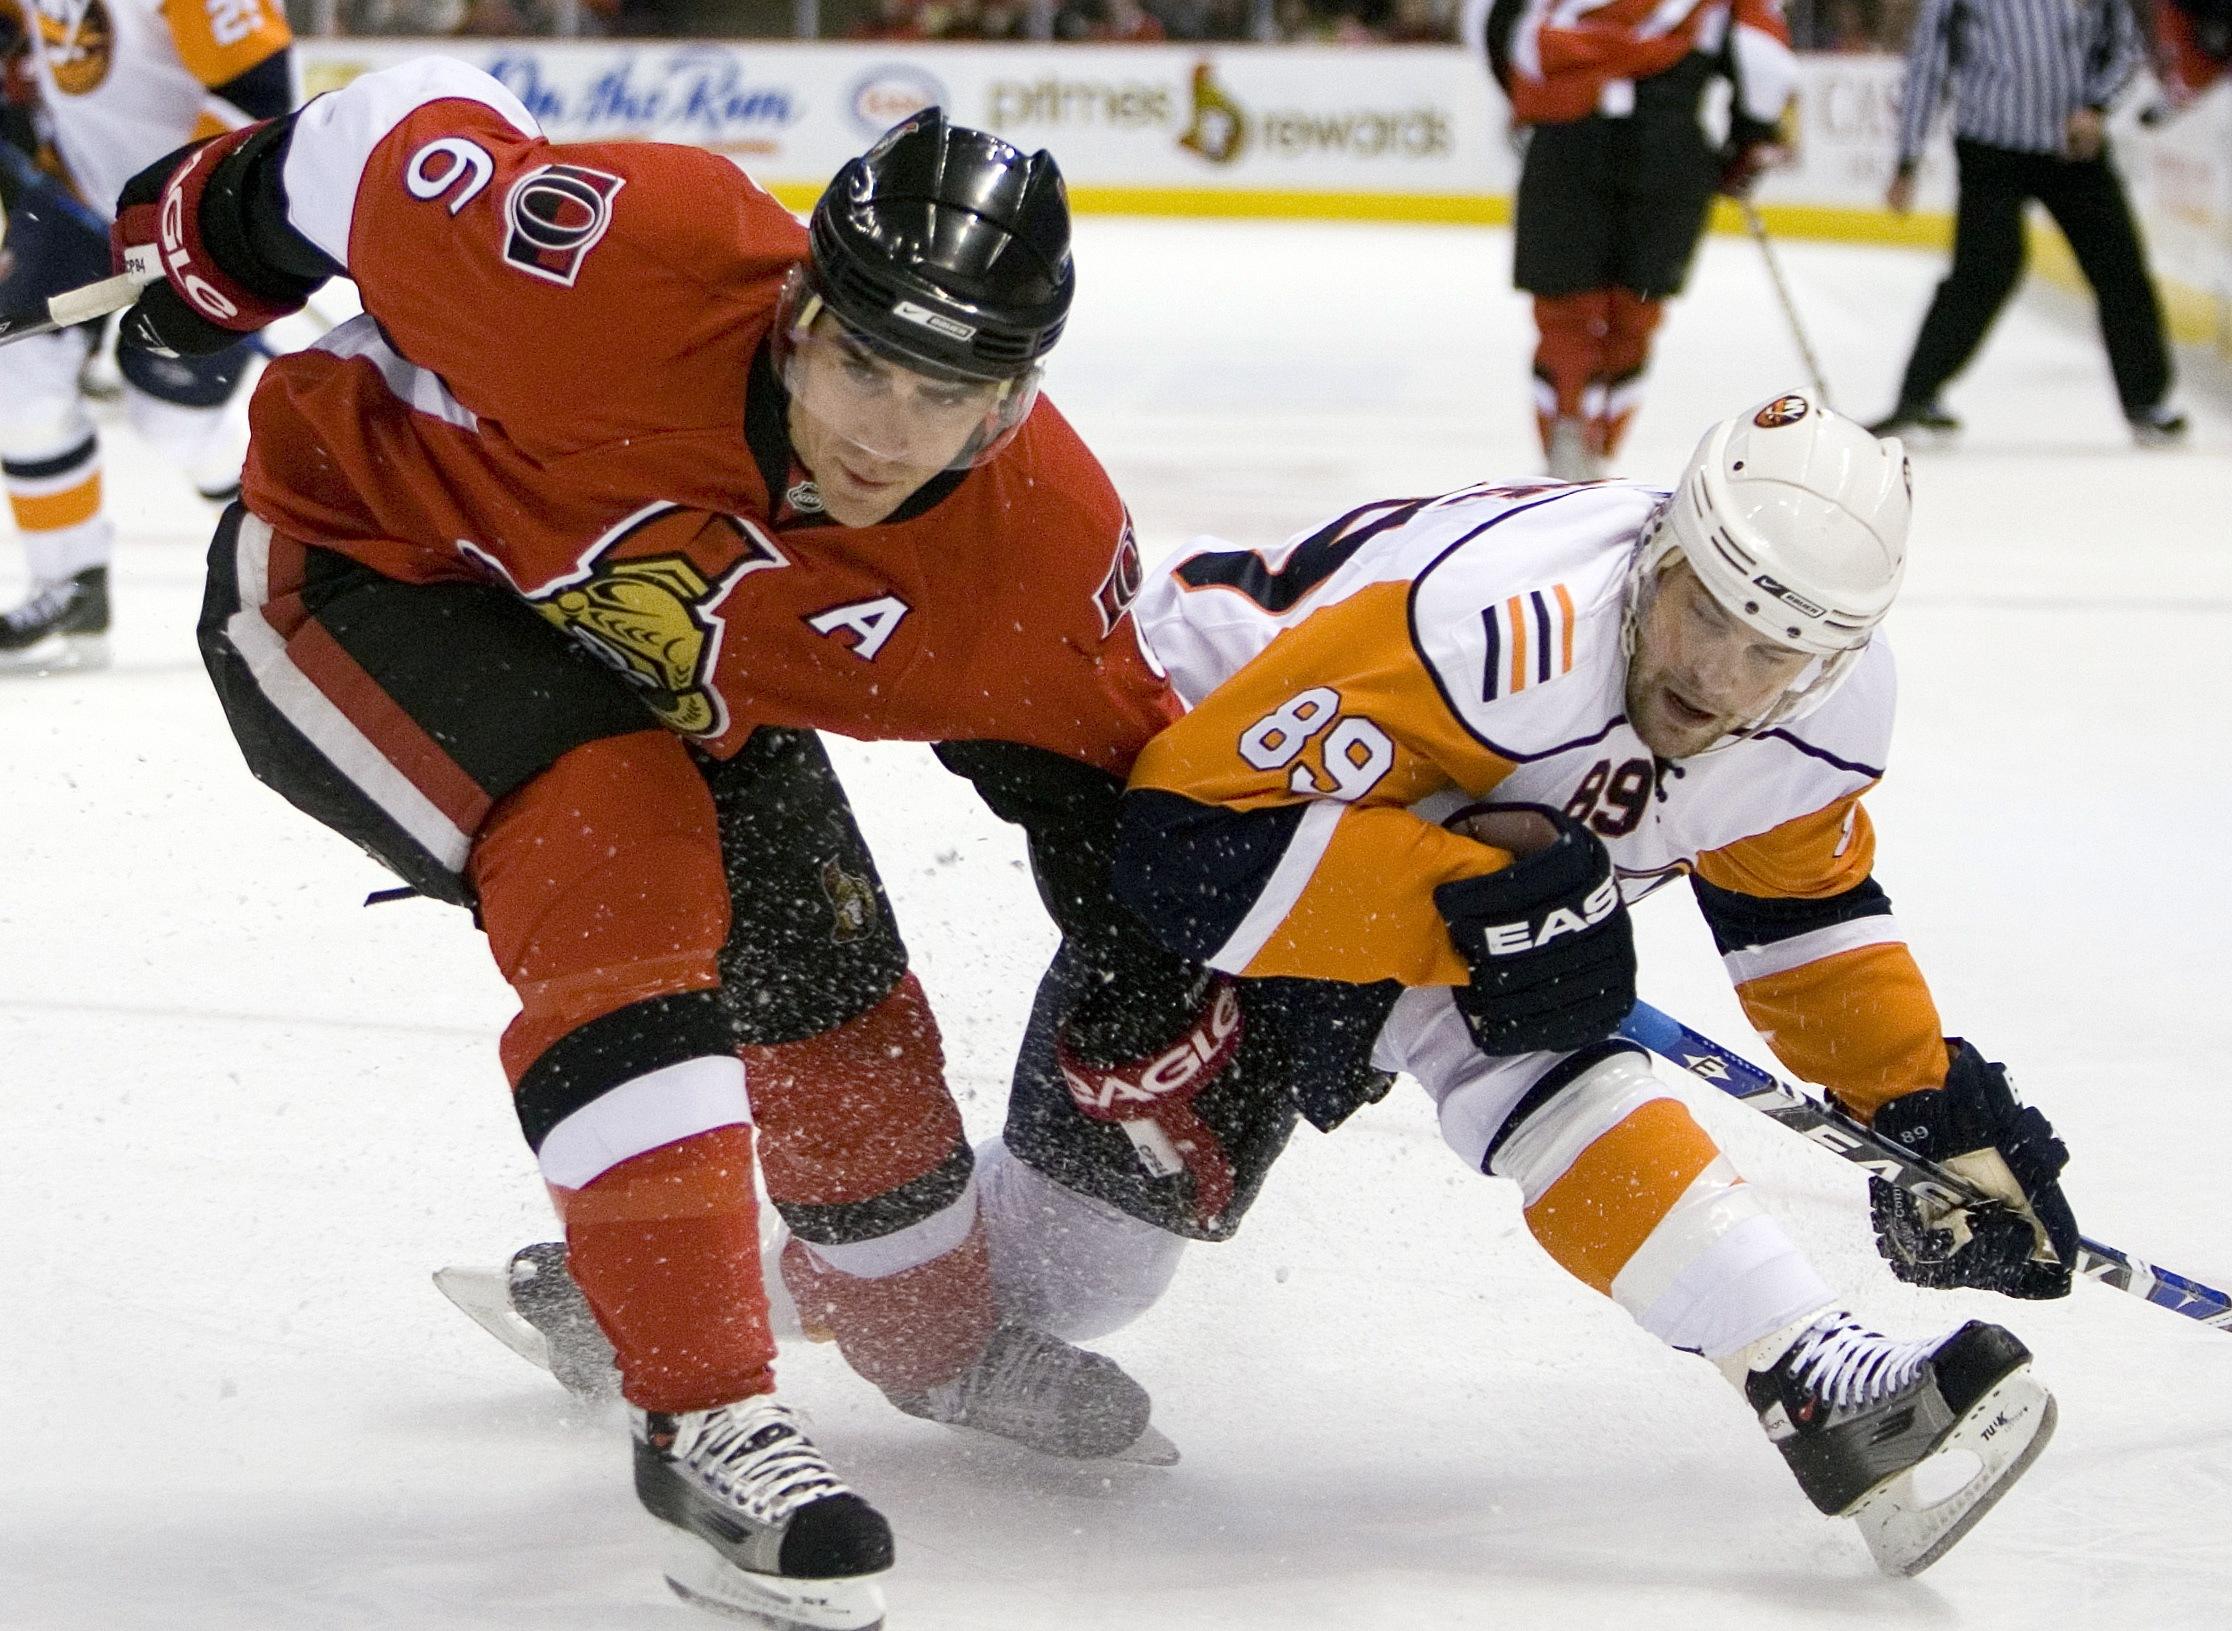 New York Islanders' Mike Comrie, right, and Ottawa Senators' Wade Redden get tangled up during first period NHL hockey action in Ottawa, Canada on Thu...